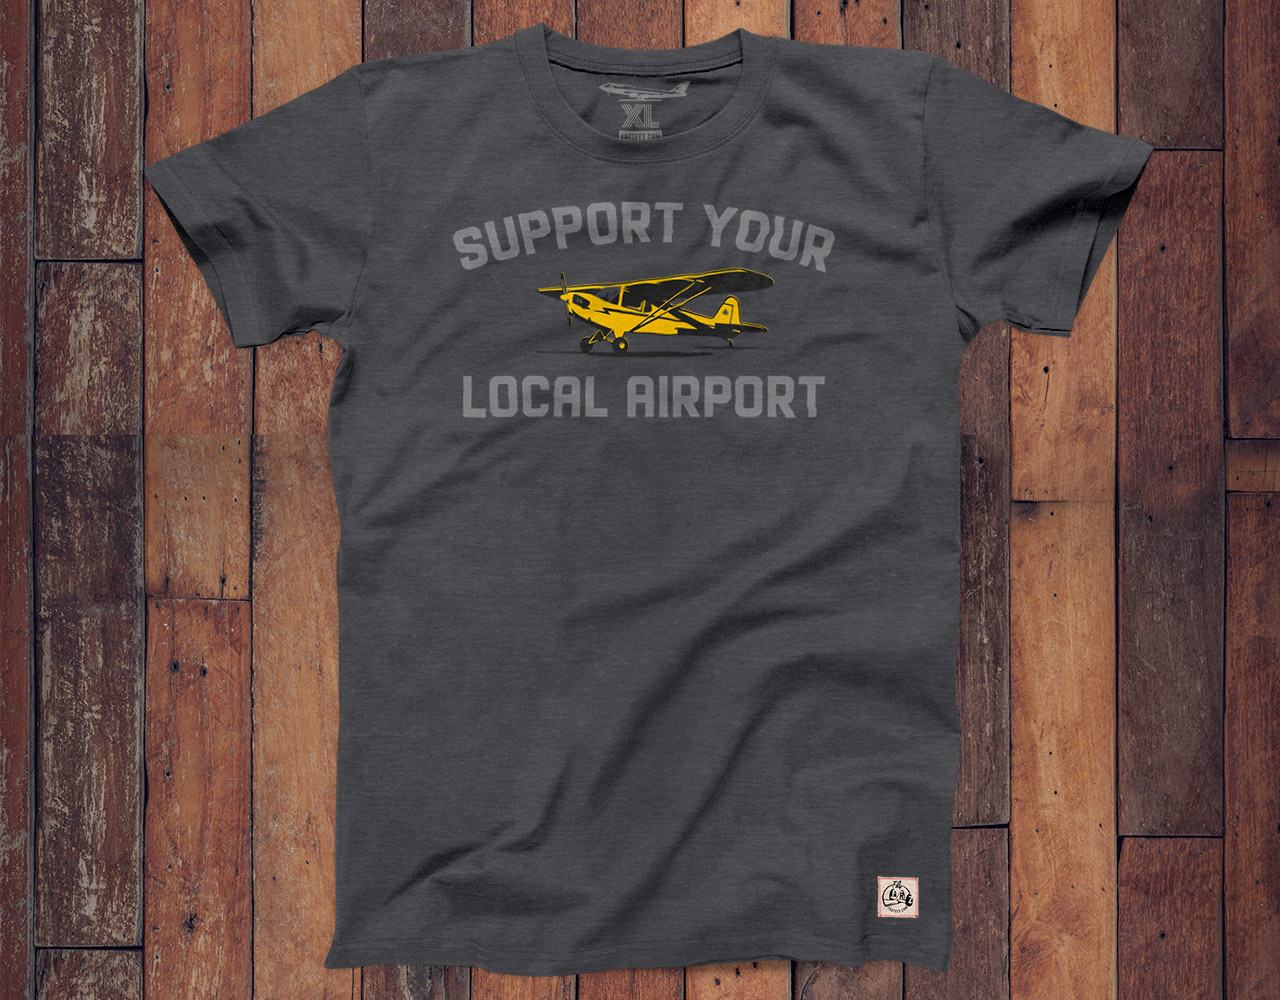 Support Your Local Airport shirt